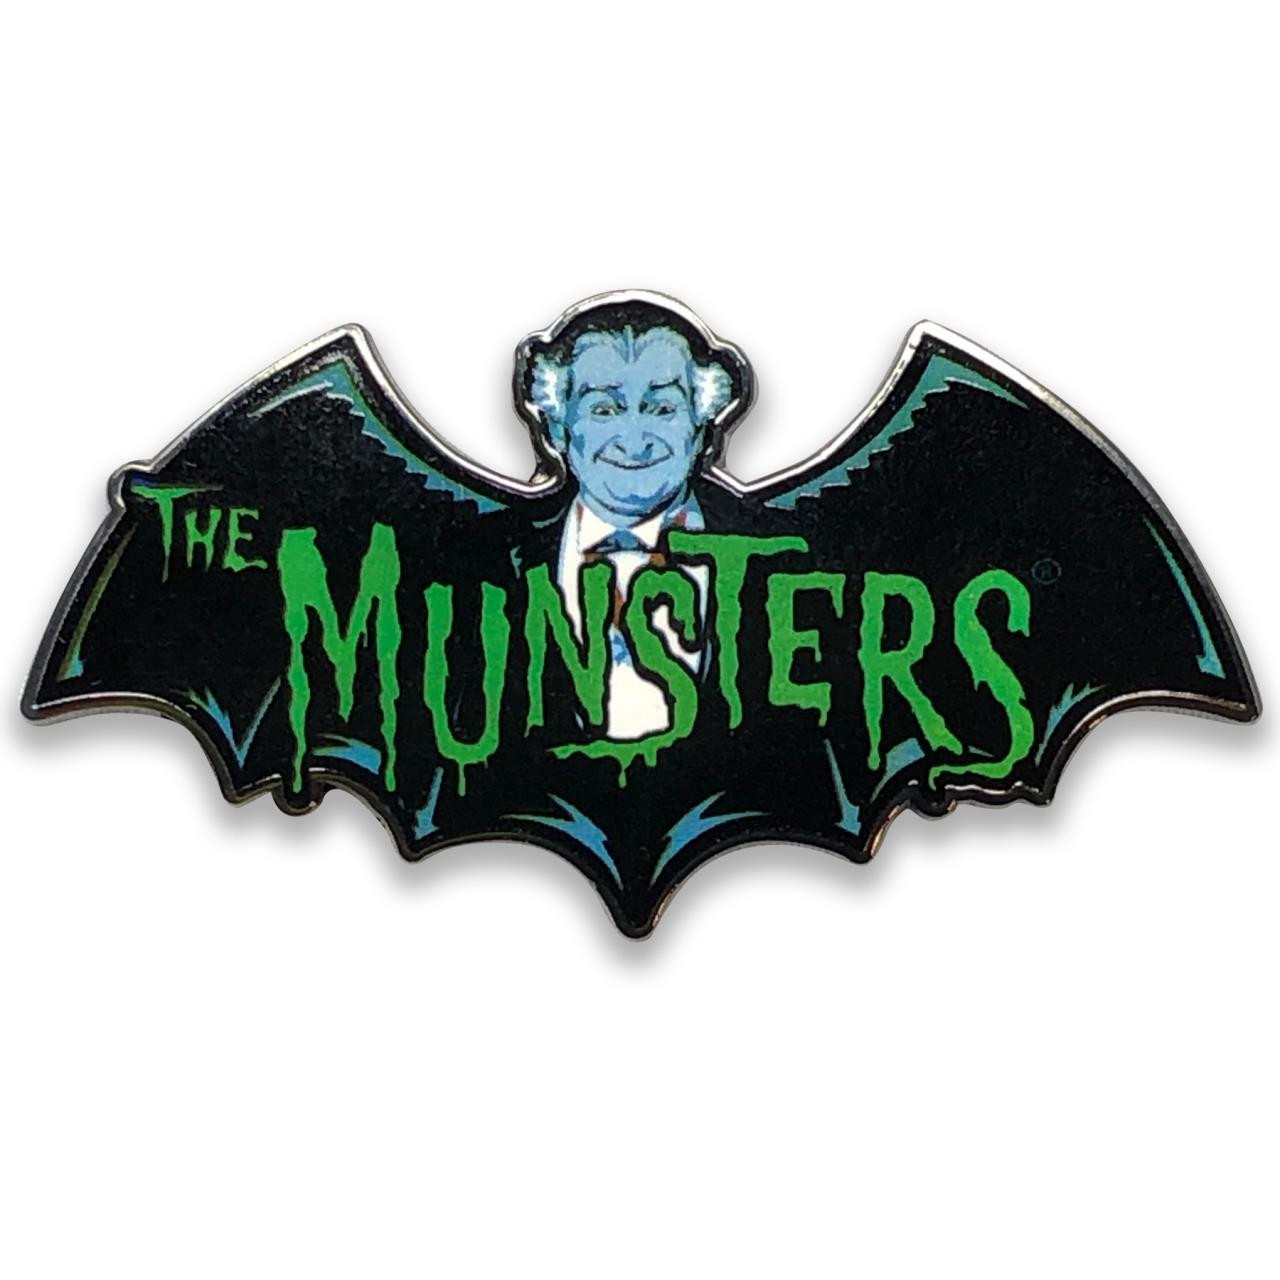 The Munsters Bat Collectable Pin* - 0659682807225